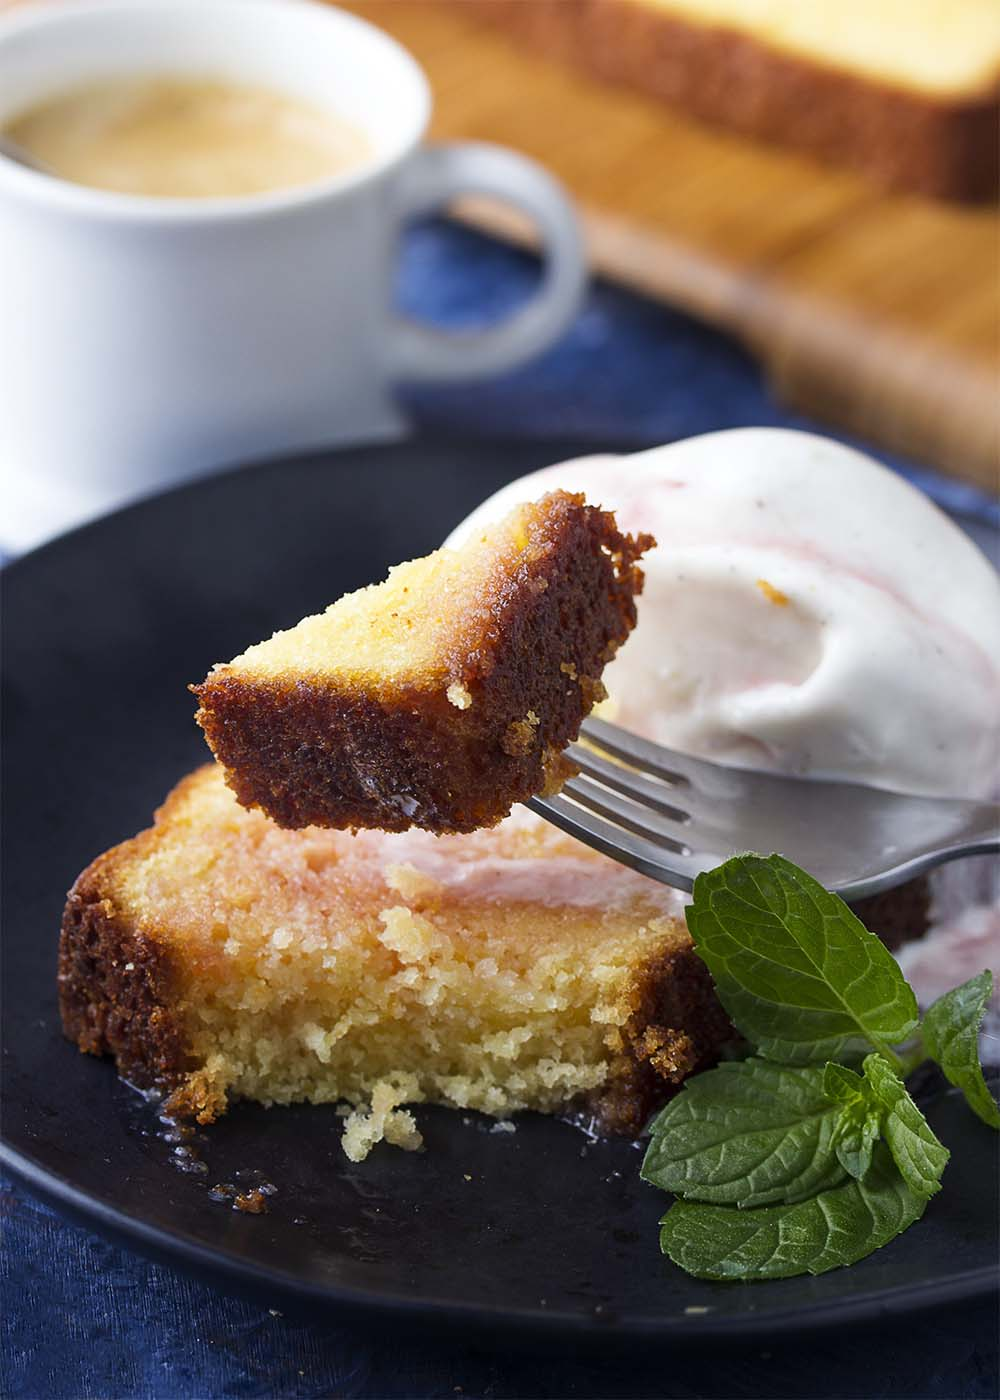 A fork holding up a bite of moist and delicious orange pound cake.